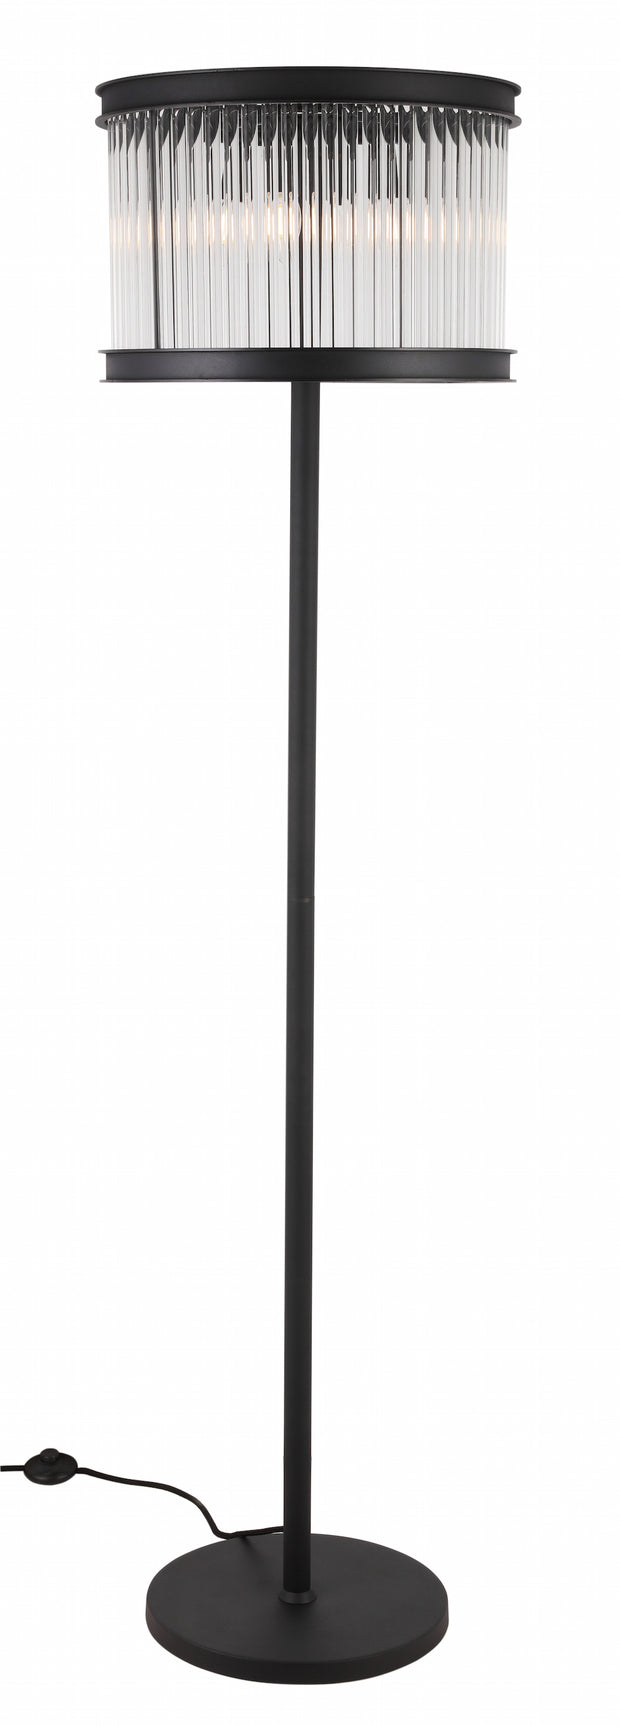 Crystal Rods Floor Lamp